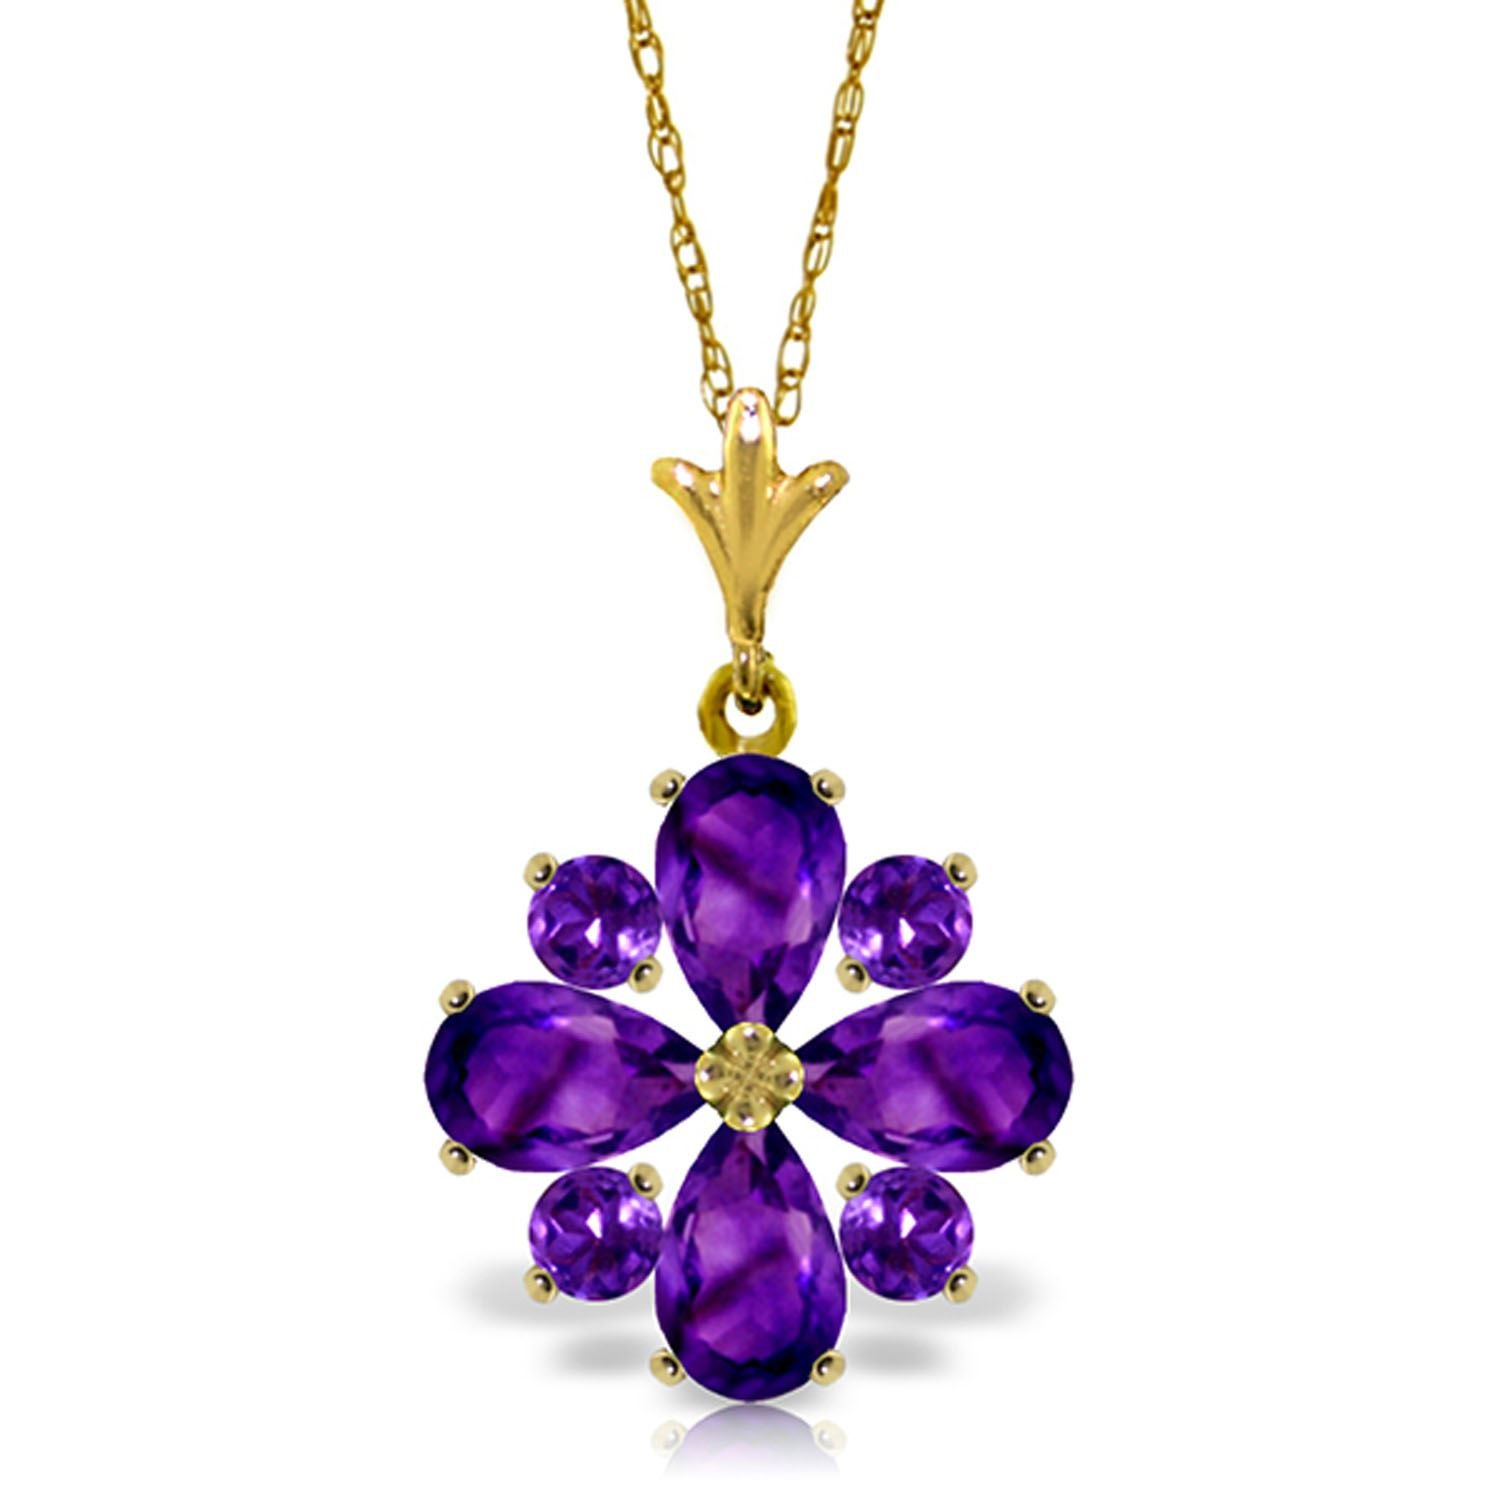 ALARRI 2.43 Carat 14K Solid Gold Testimony Of Love Amethyst Necklace with 18 Inch Chain Length